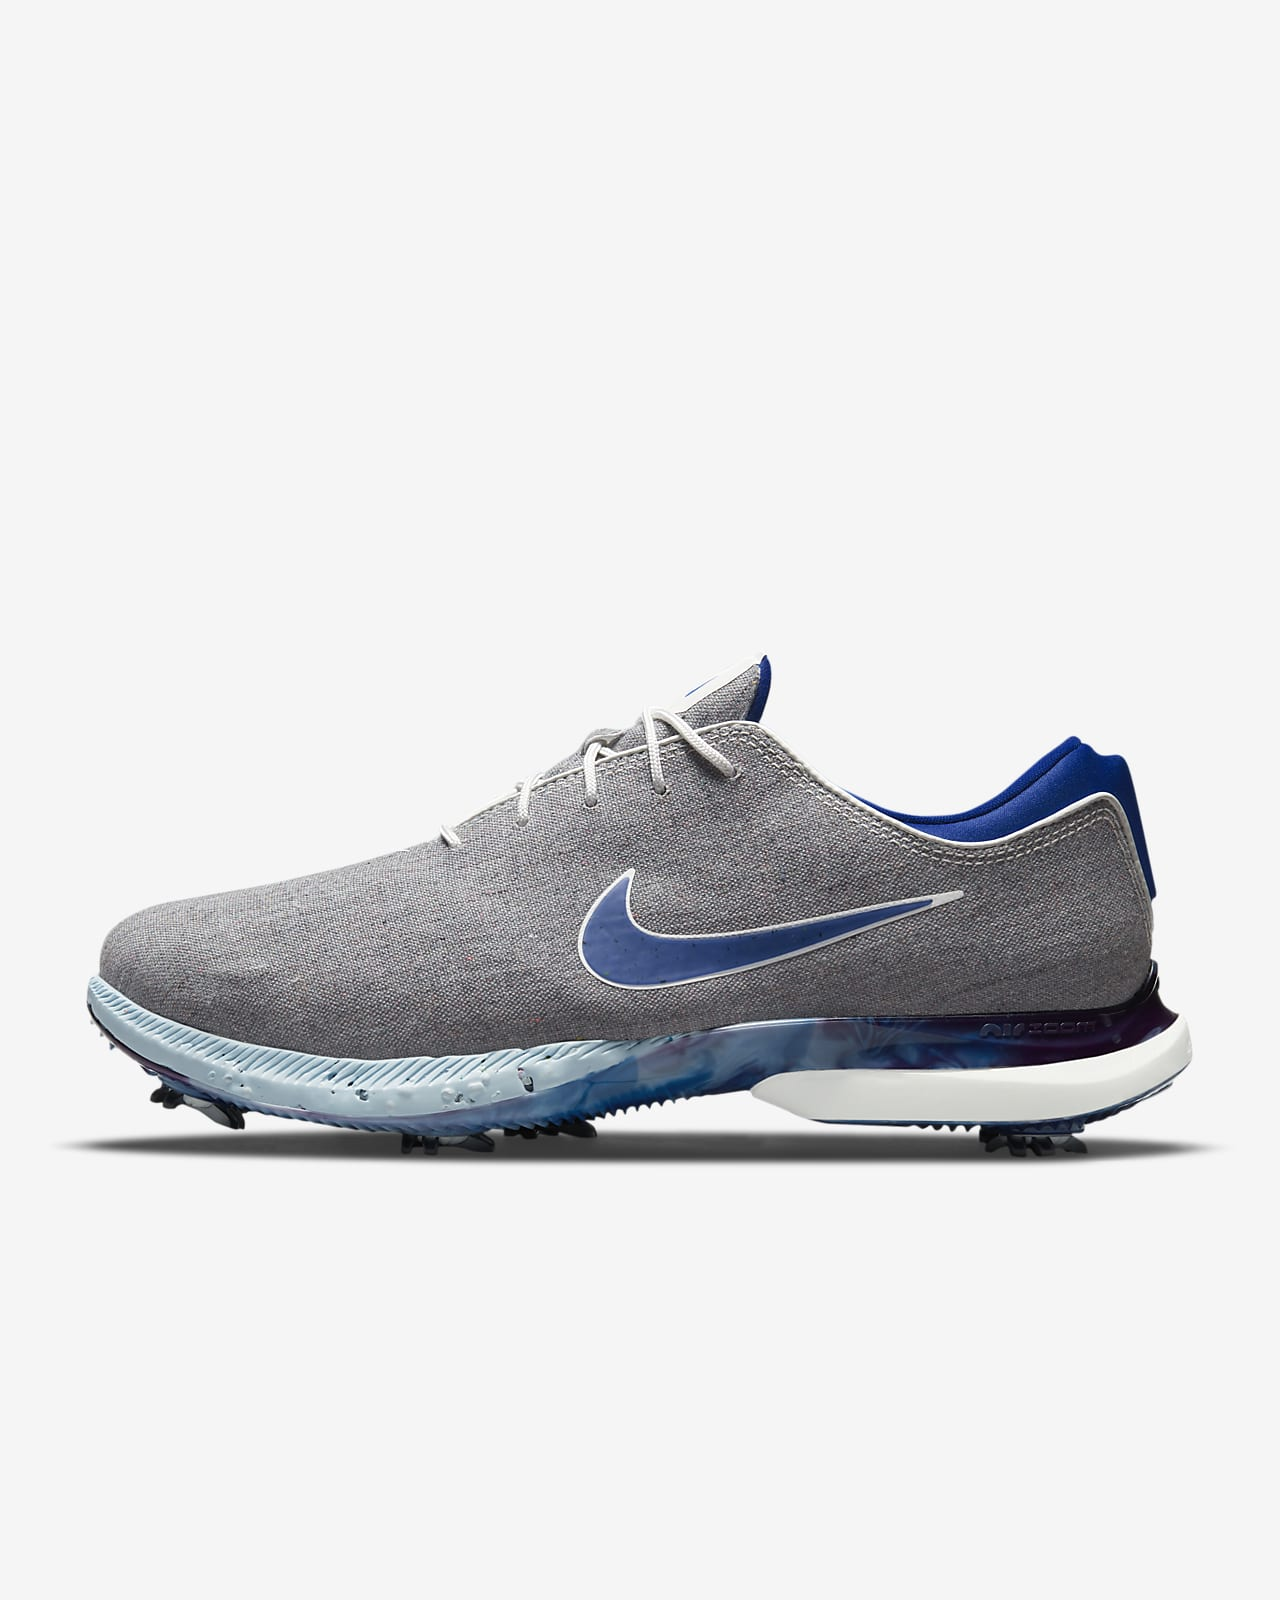 Calzado de golf Nike Air Zoom Victory Tour 2 NRG